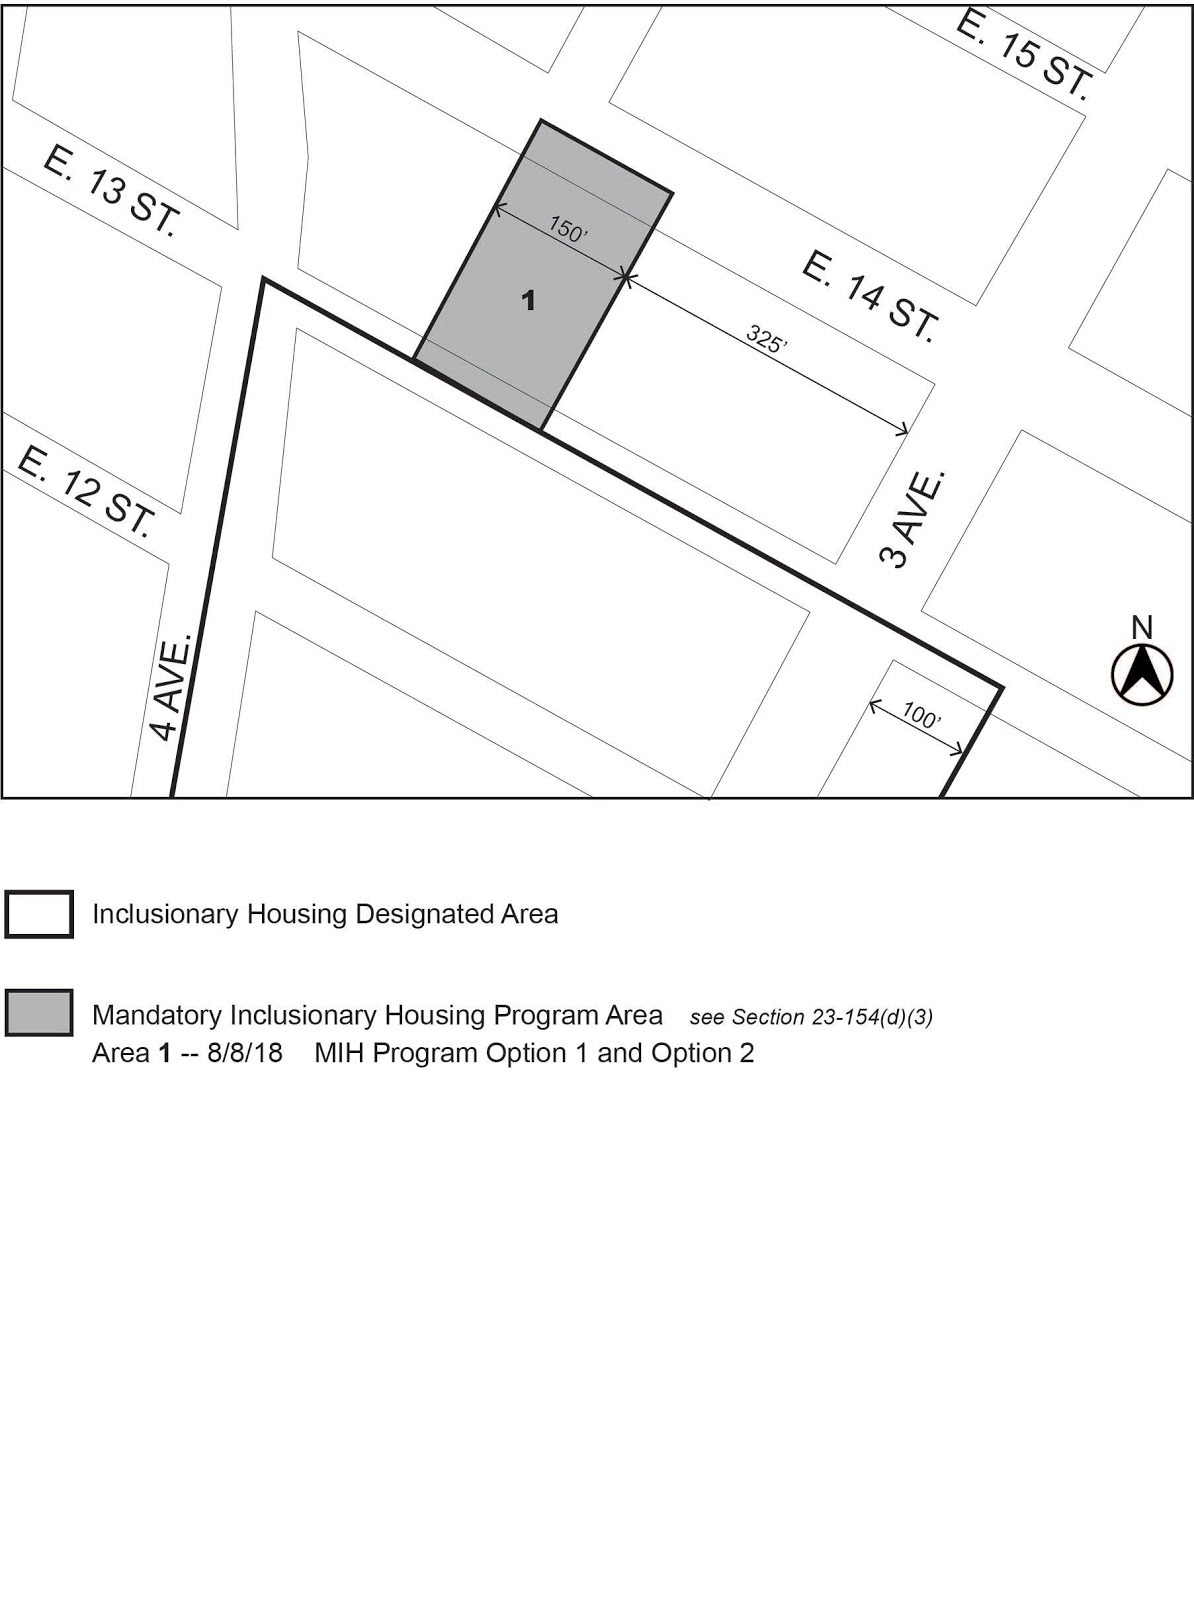 Zoning Resolutions F-Inclusionary Housing Designated Areas and Mandatory Inclusionary Housing Areas_2.86